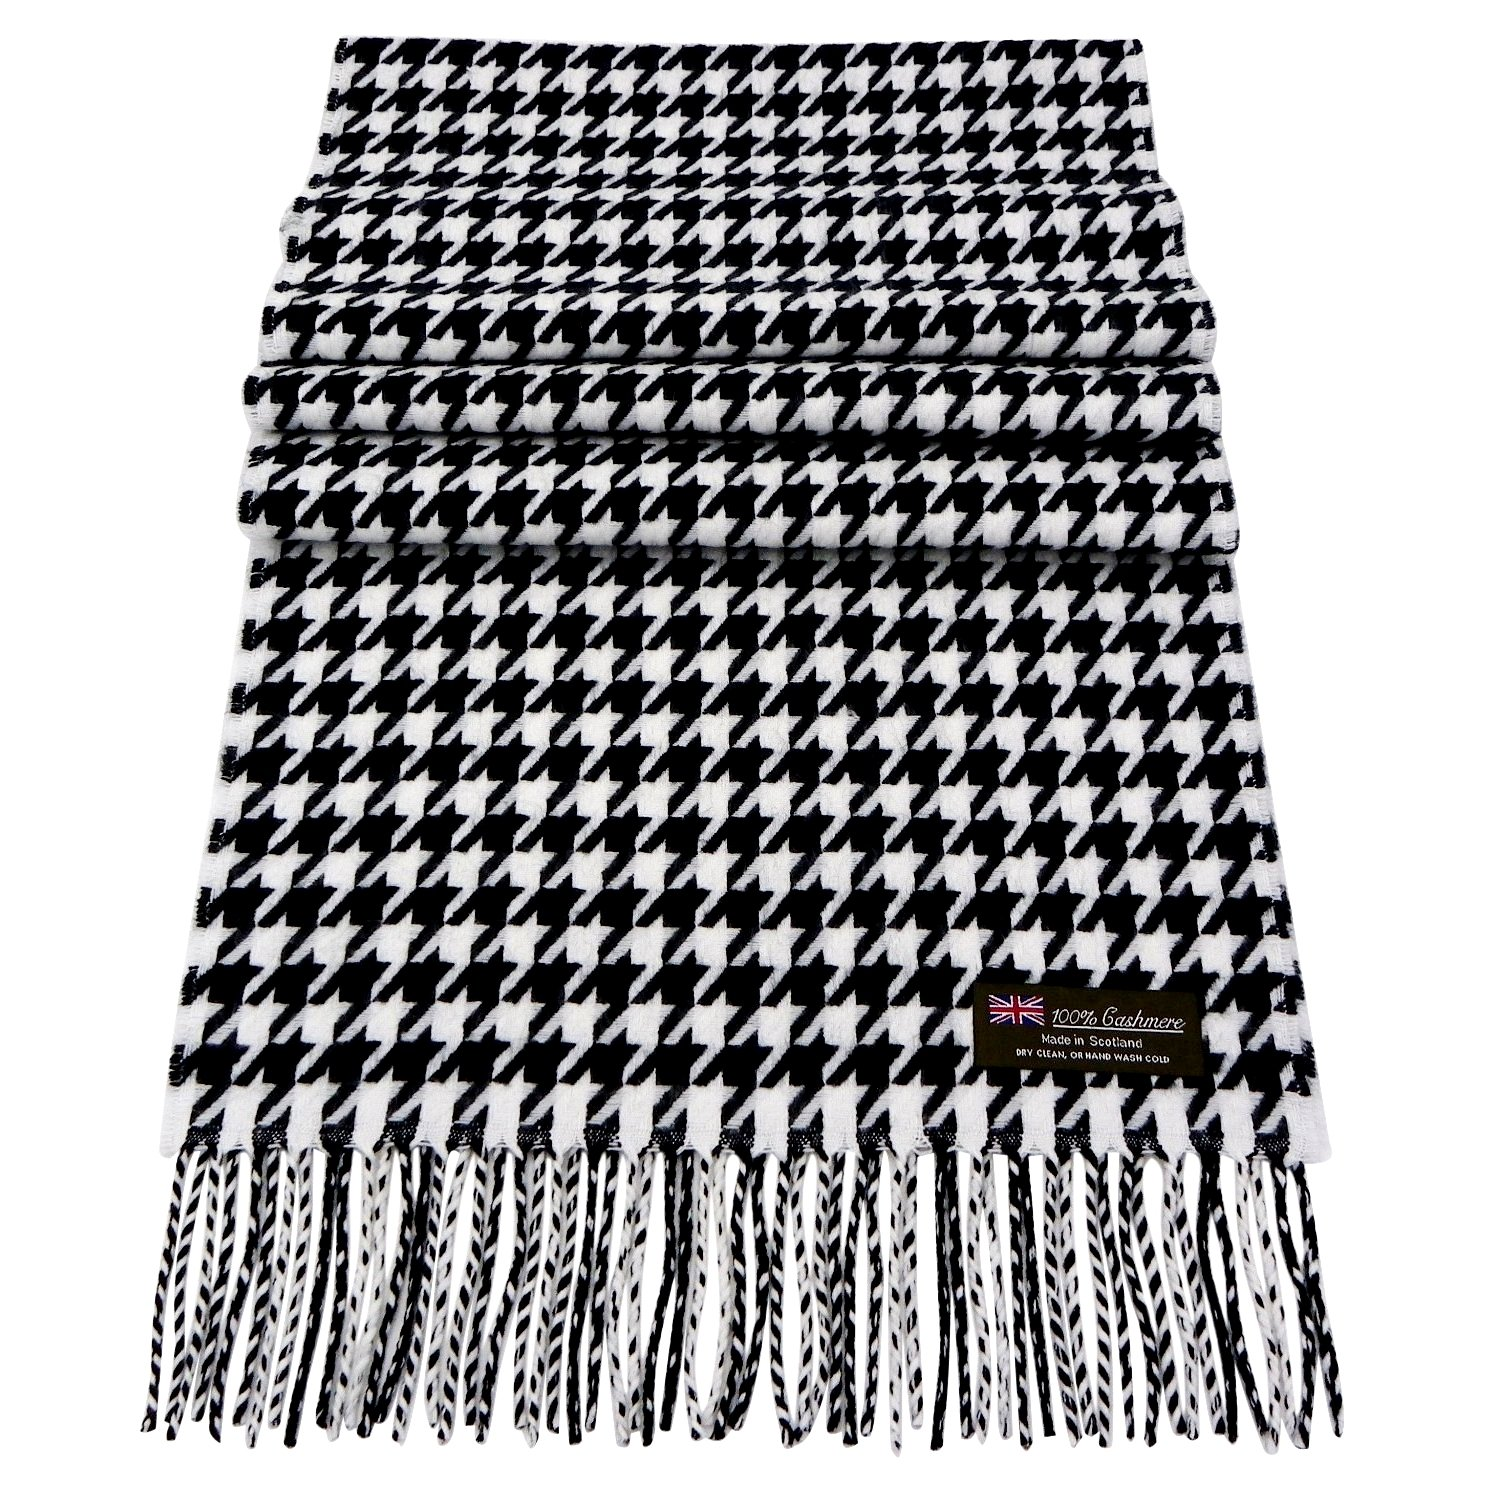 Rosemarie Collections 100% Cashmere Winter Scarf Made In Scotland (Black and White Houndstooth)